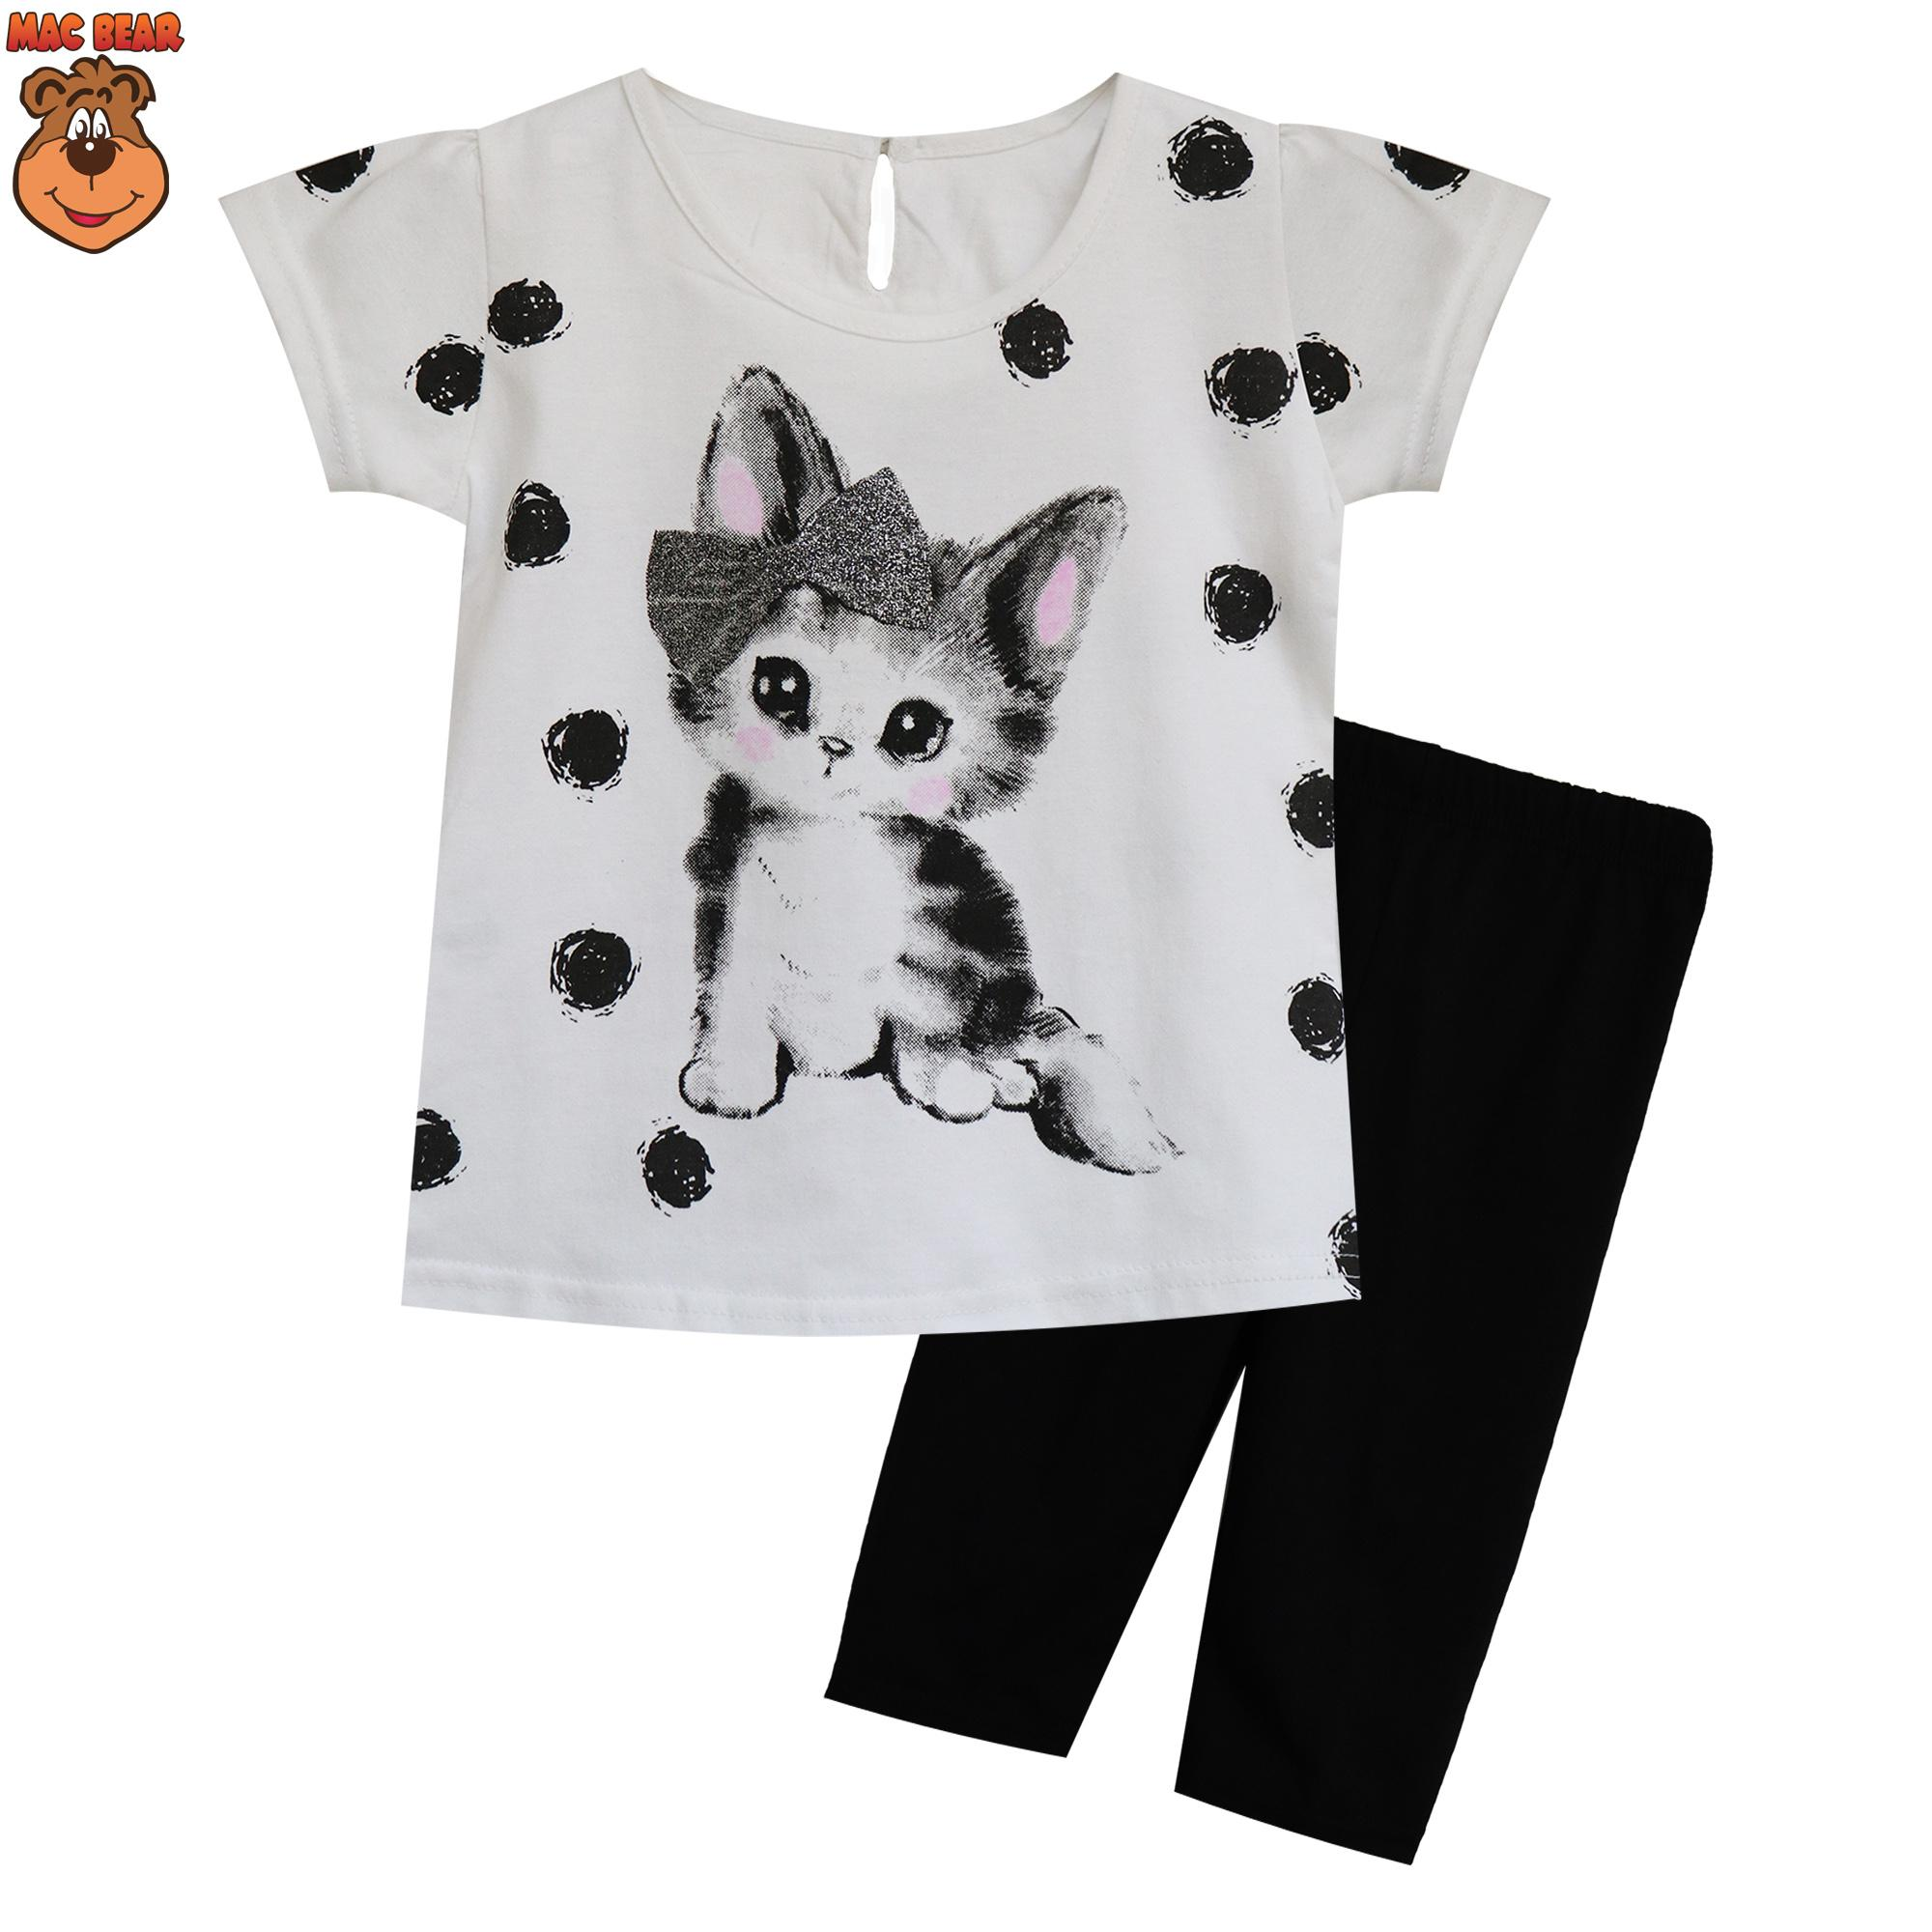 MacBee Kids Baju Anak Setelan Molly The Cute Cat Polkadot 8aa7a0cc10